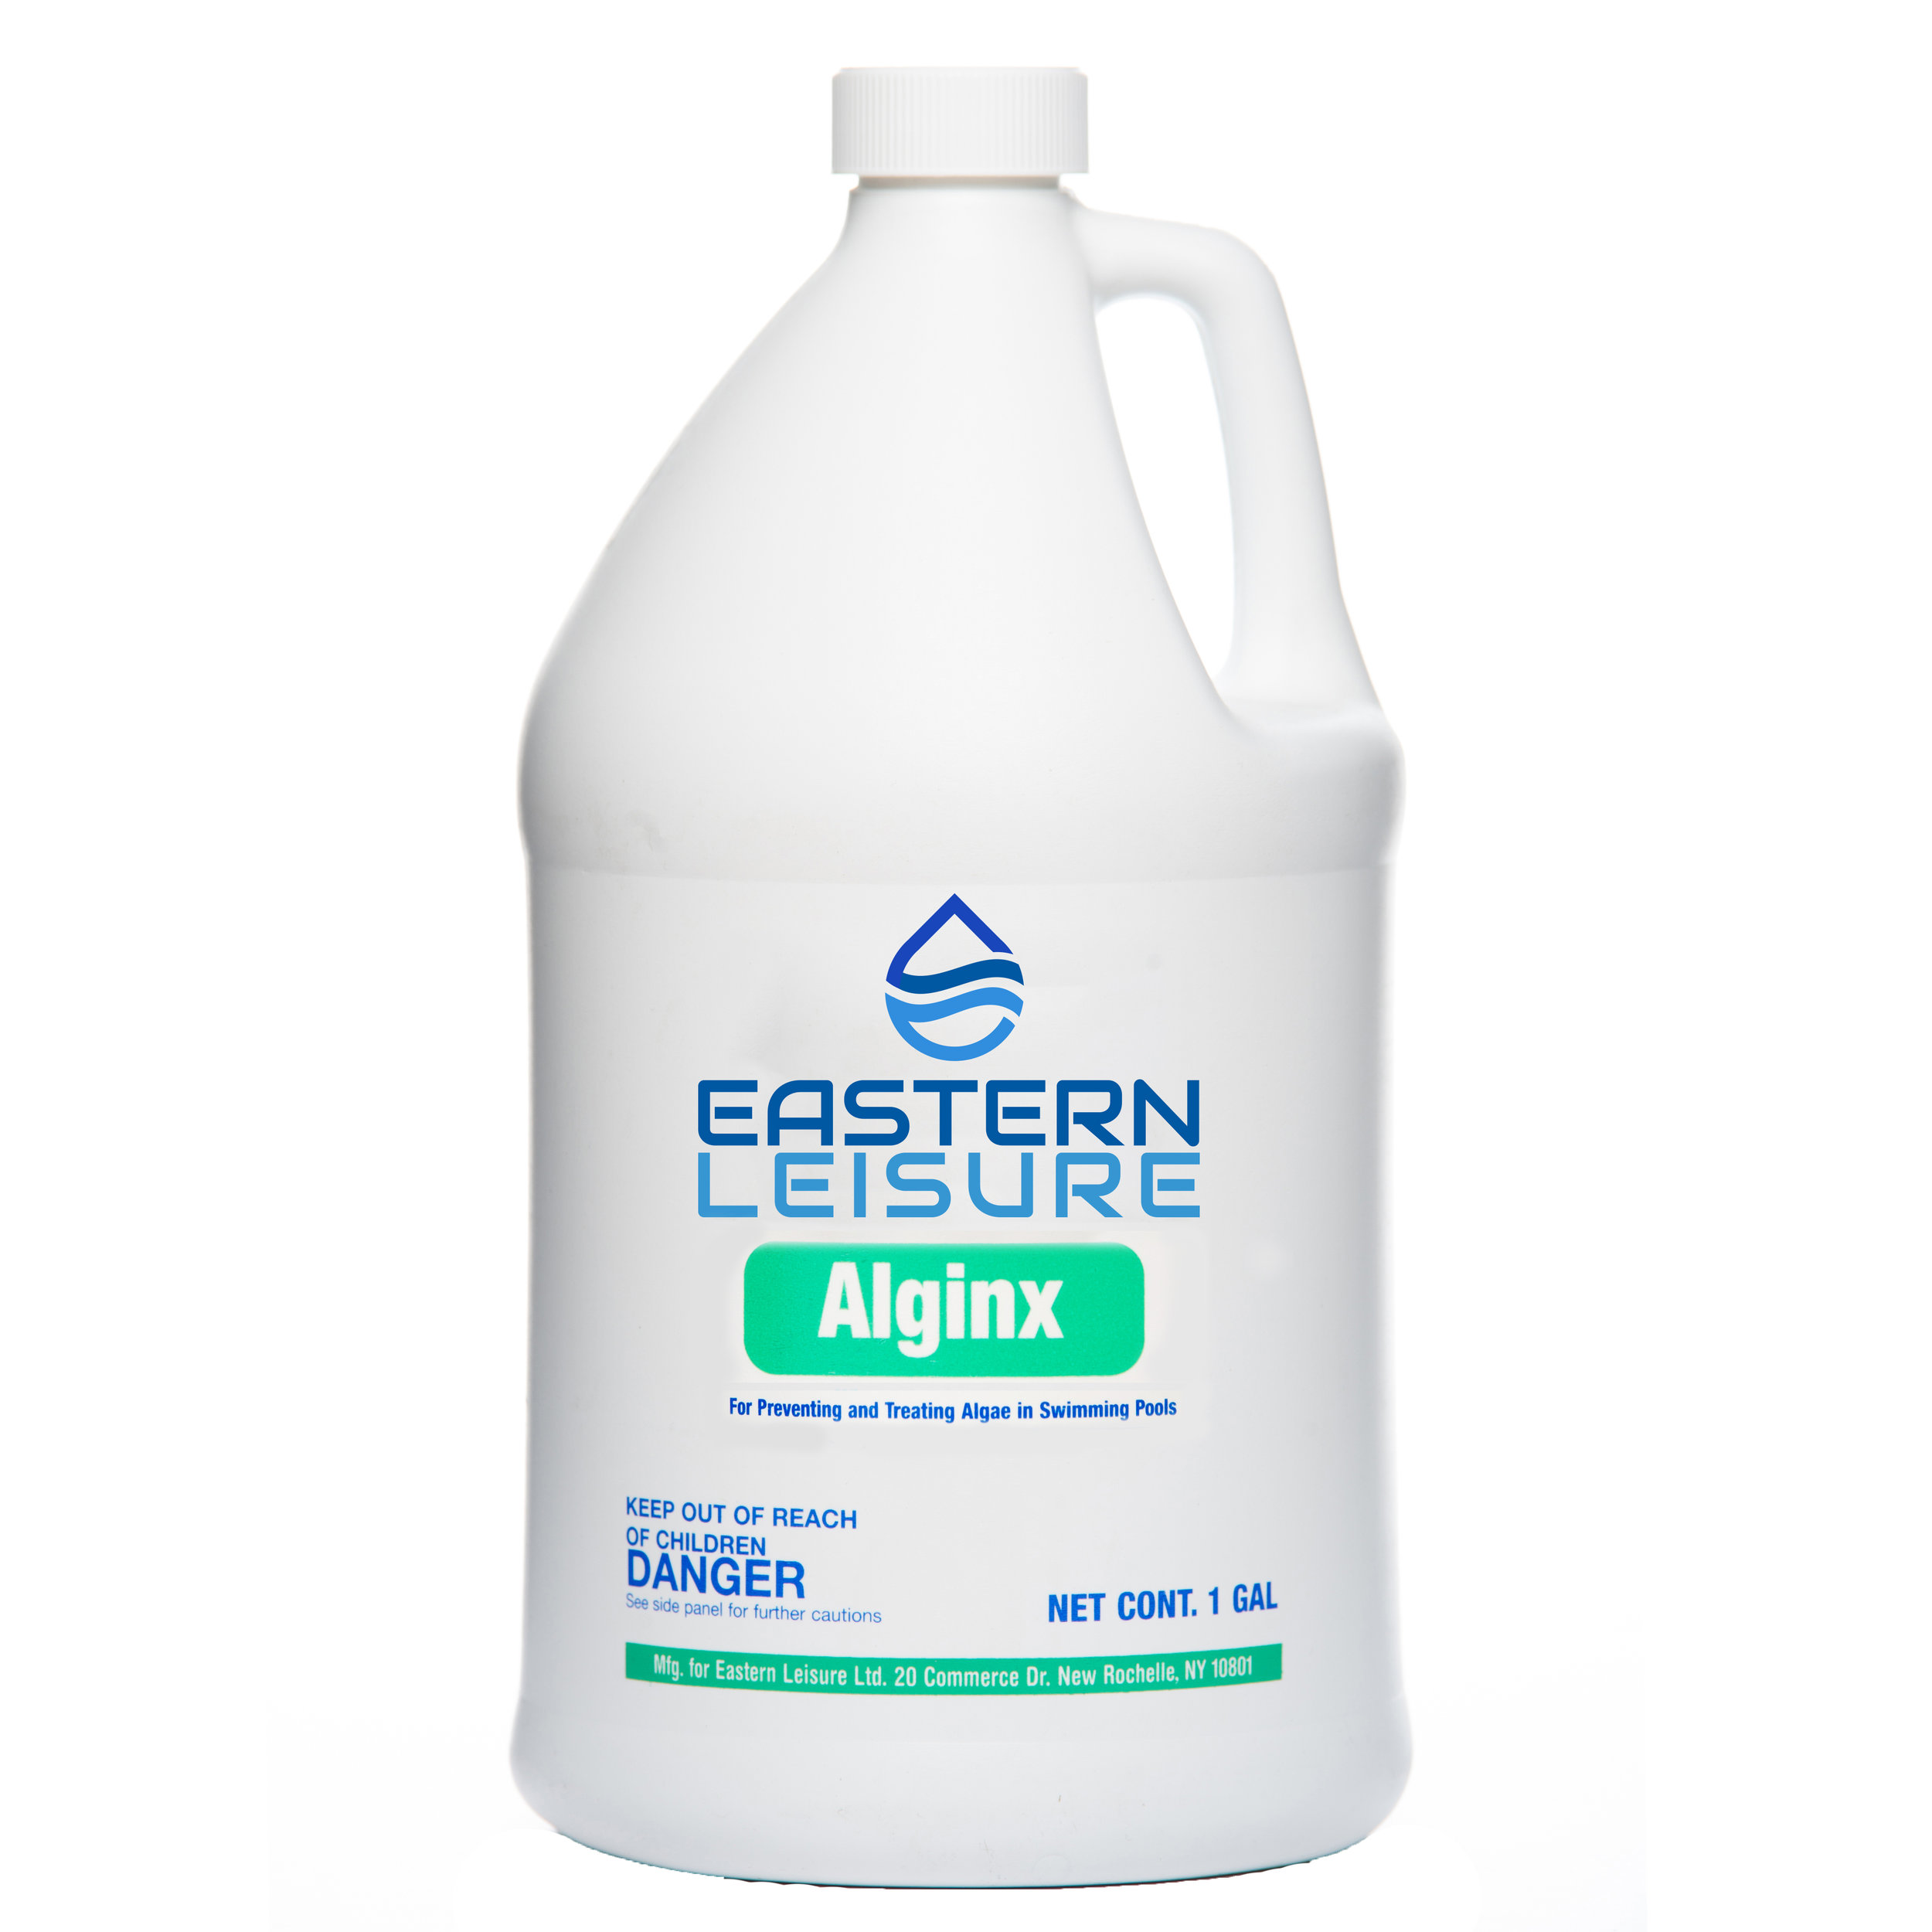 Alginx   EL101G - 1 gal. bottle, 4/case  An economical 10% Quat strength algaecide. Ideal for preventing algae growth in all pools.  Maintenance dosage: 1 gal. per  50,000 gal.